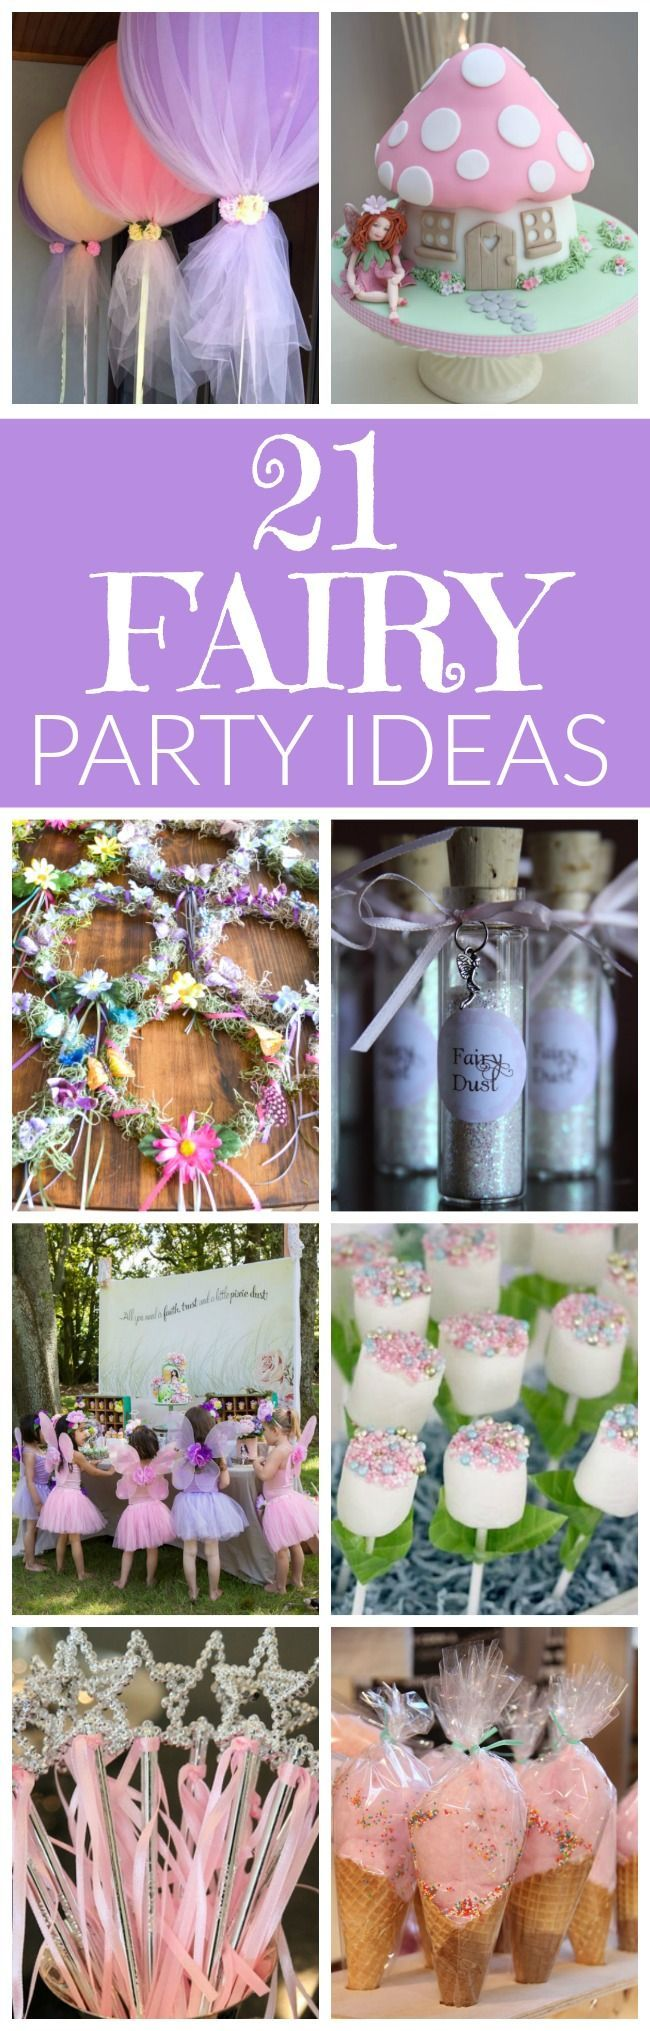 21 Fabulous Fairy Party Ideas Birthday Party1st